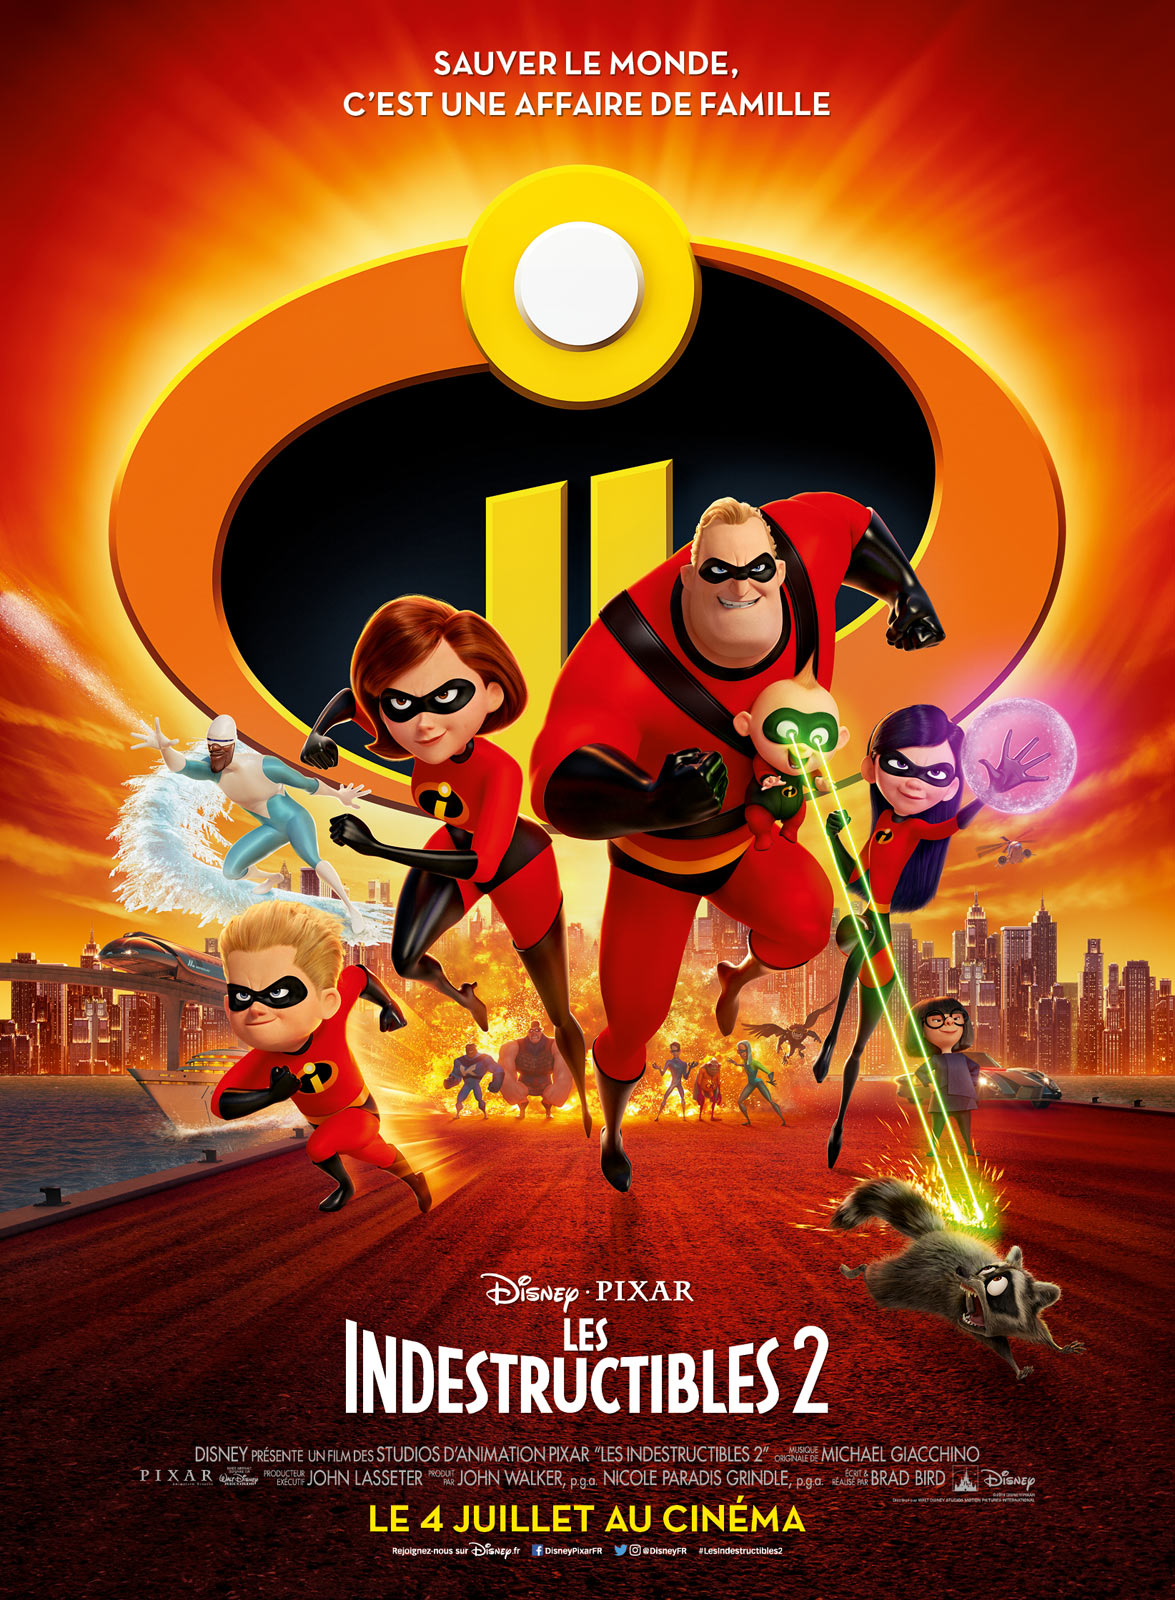 Les Indestructibles 2 - film 2018